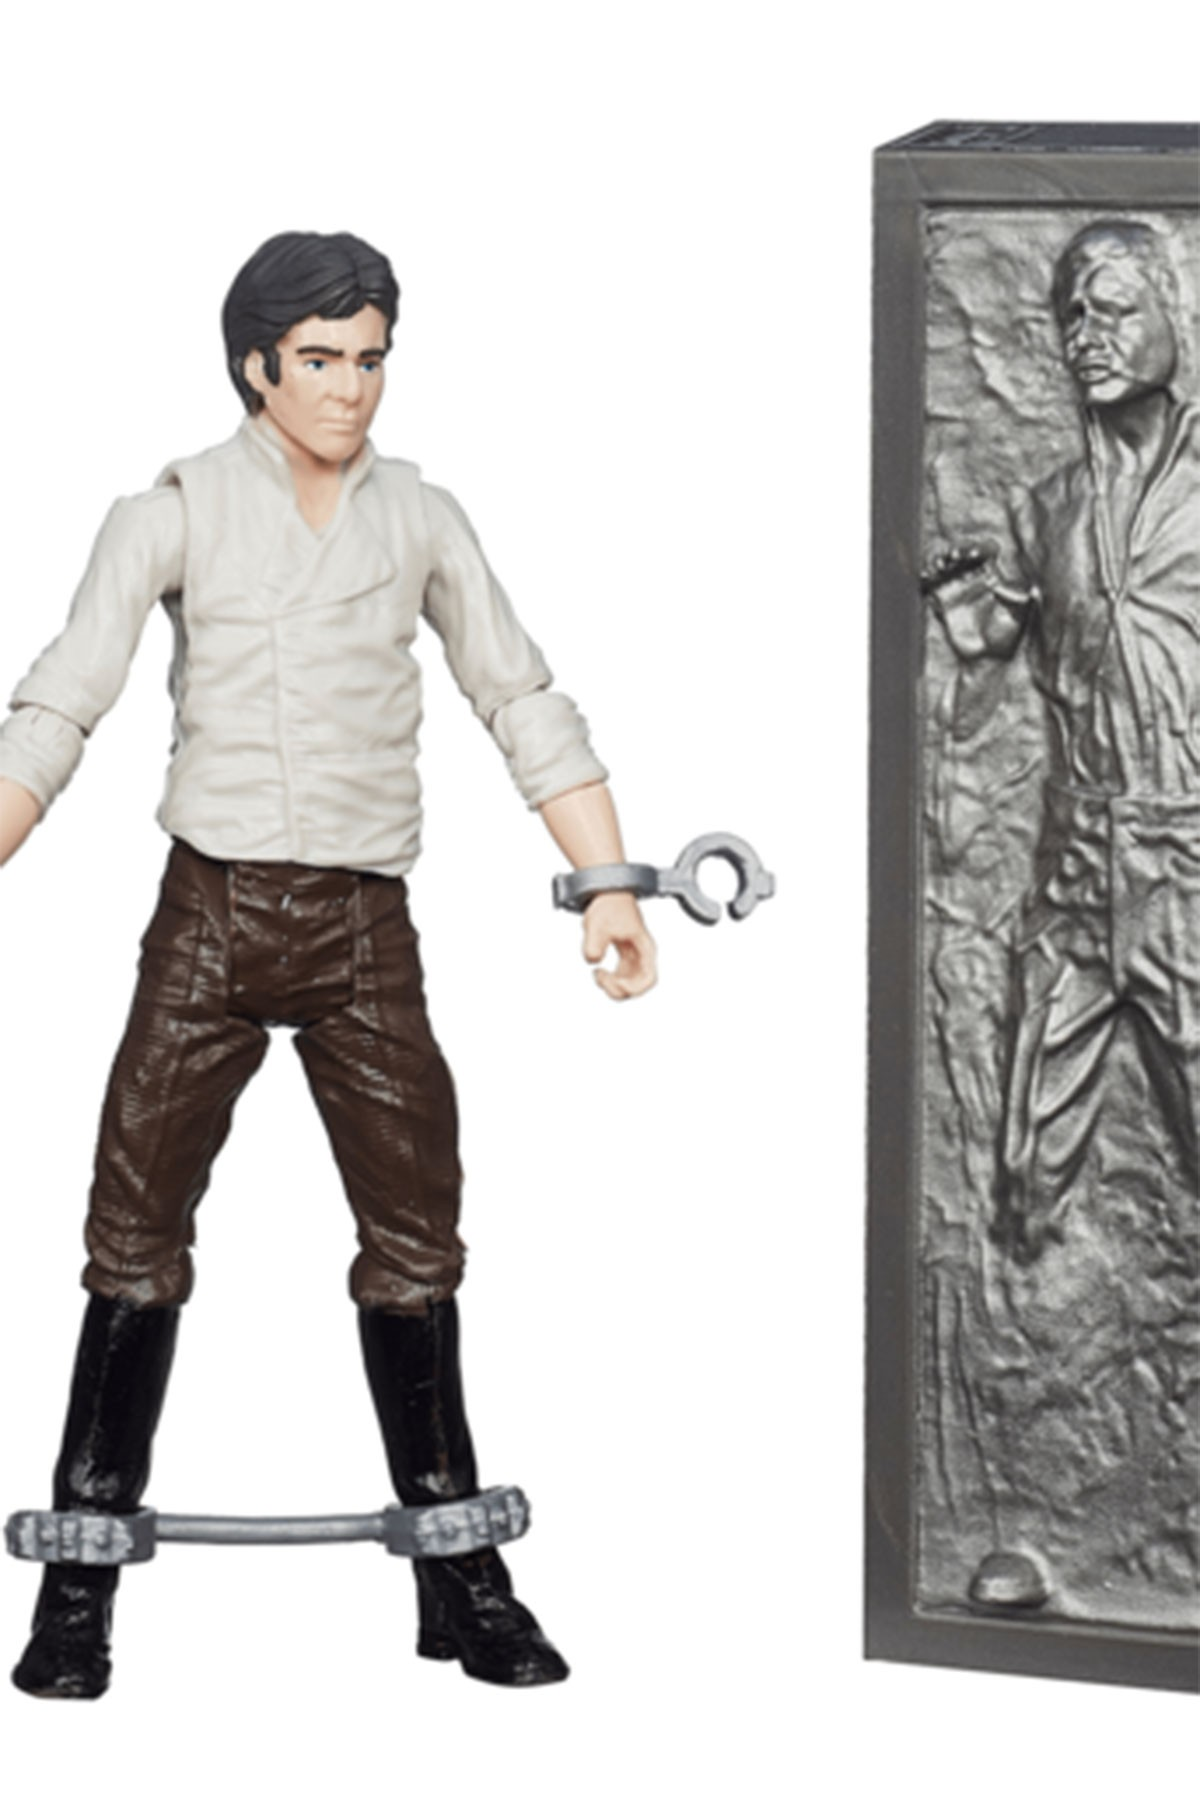 Star Wars Black Series 9.5cm Figure - Han Solo With Carbonite Figure